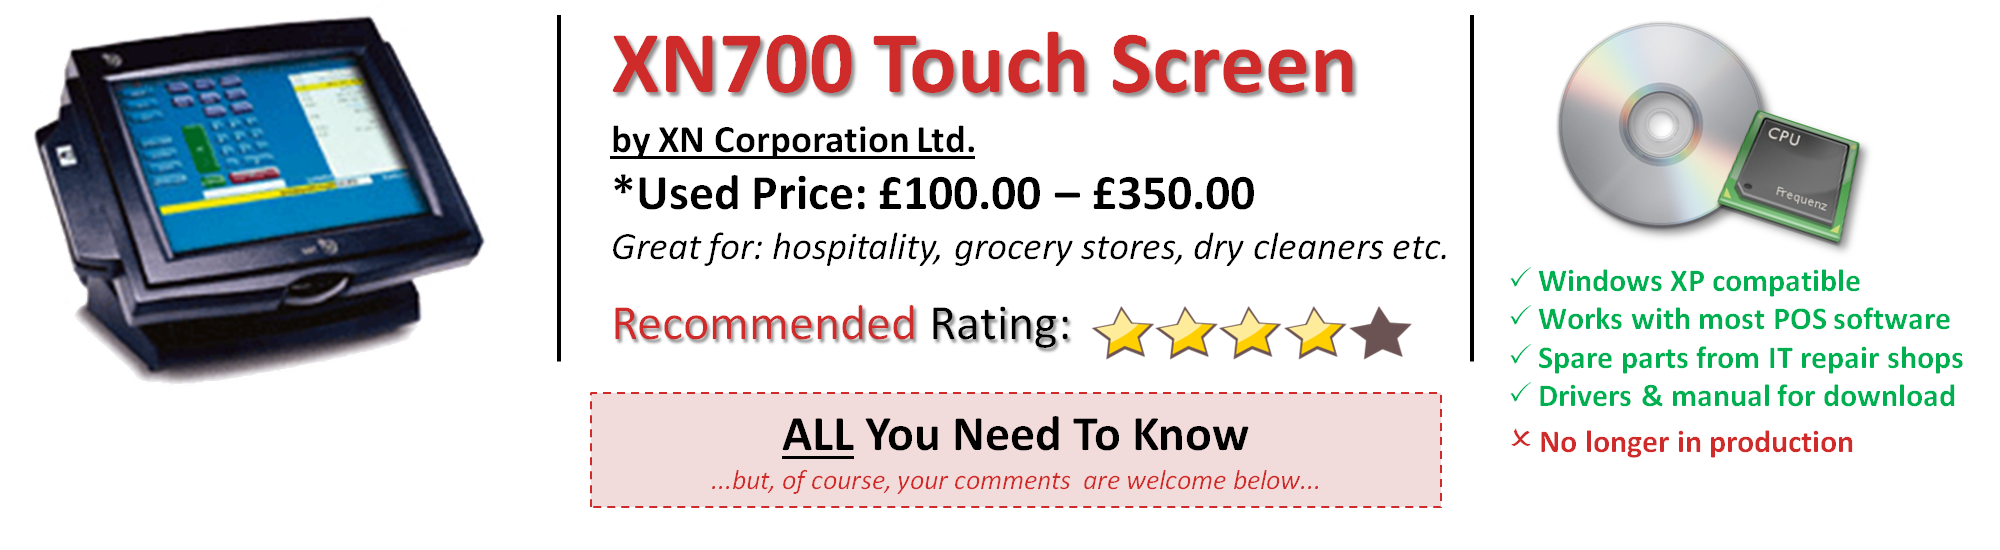 XN700-Touch-Screen